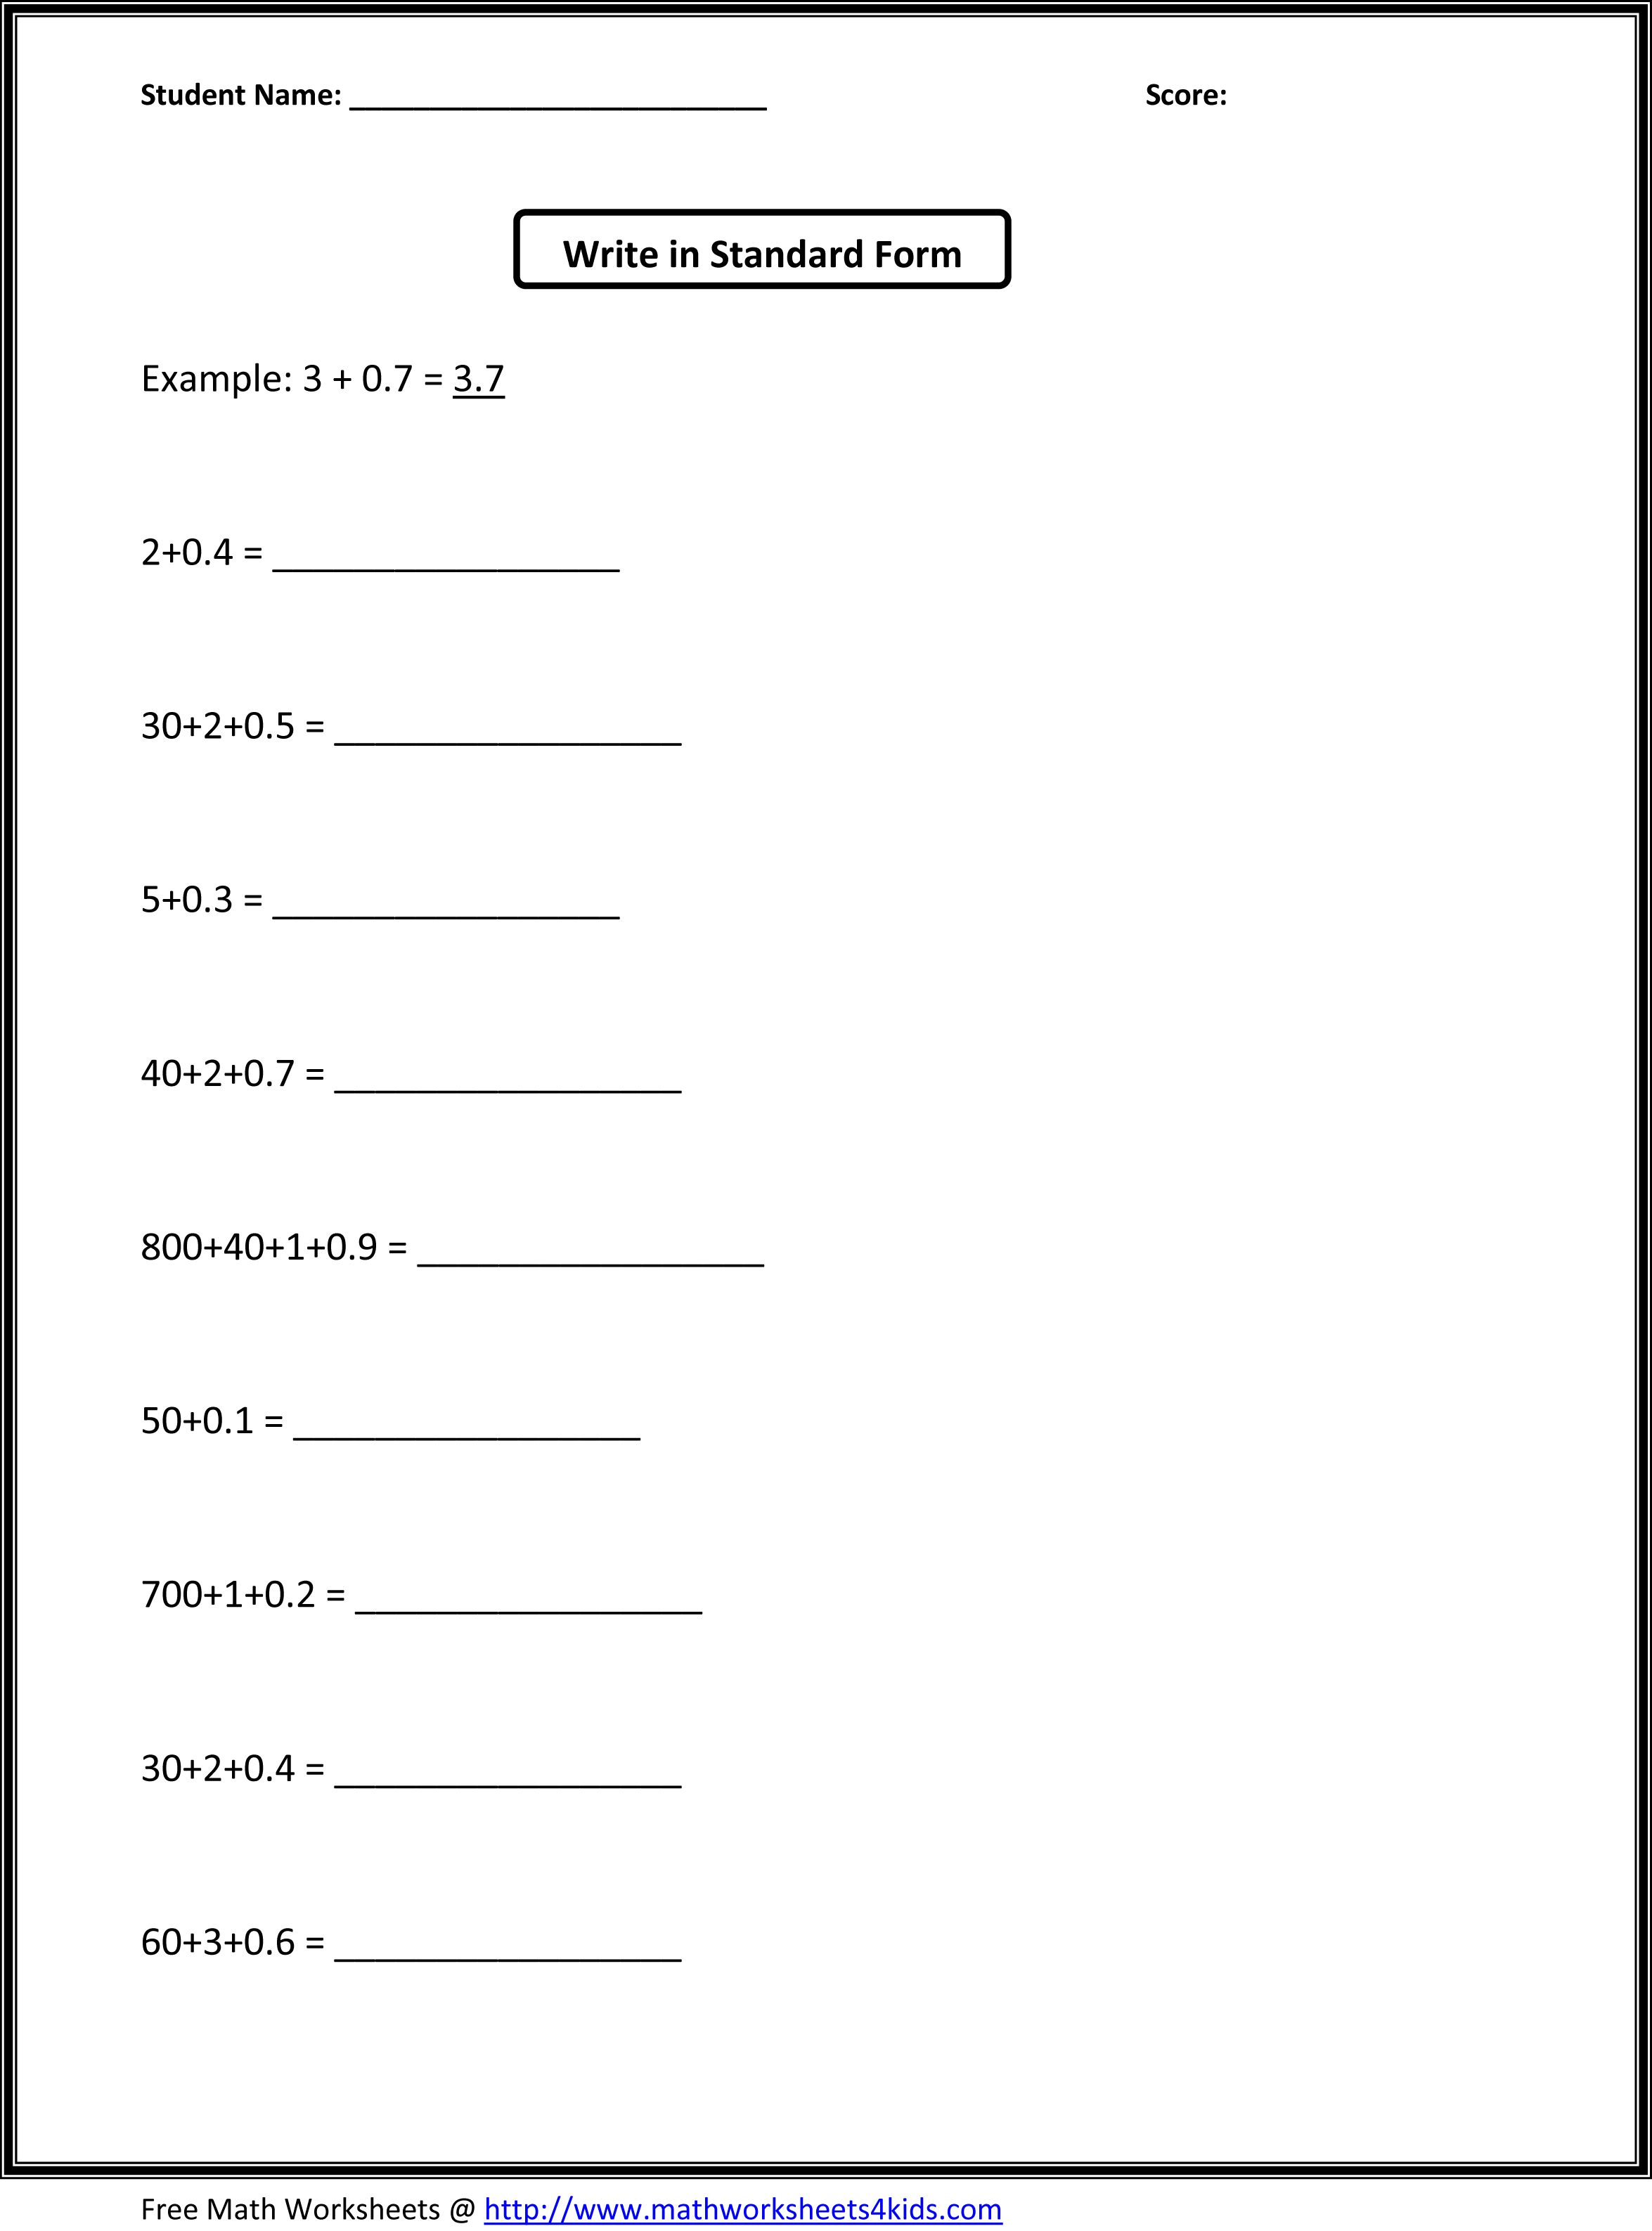 Third Grade Math Worksheets   Free math worksheets [ 3174 x 2350 Pixel ]